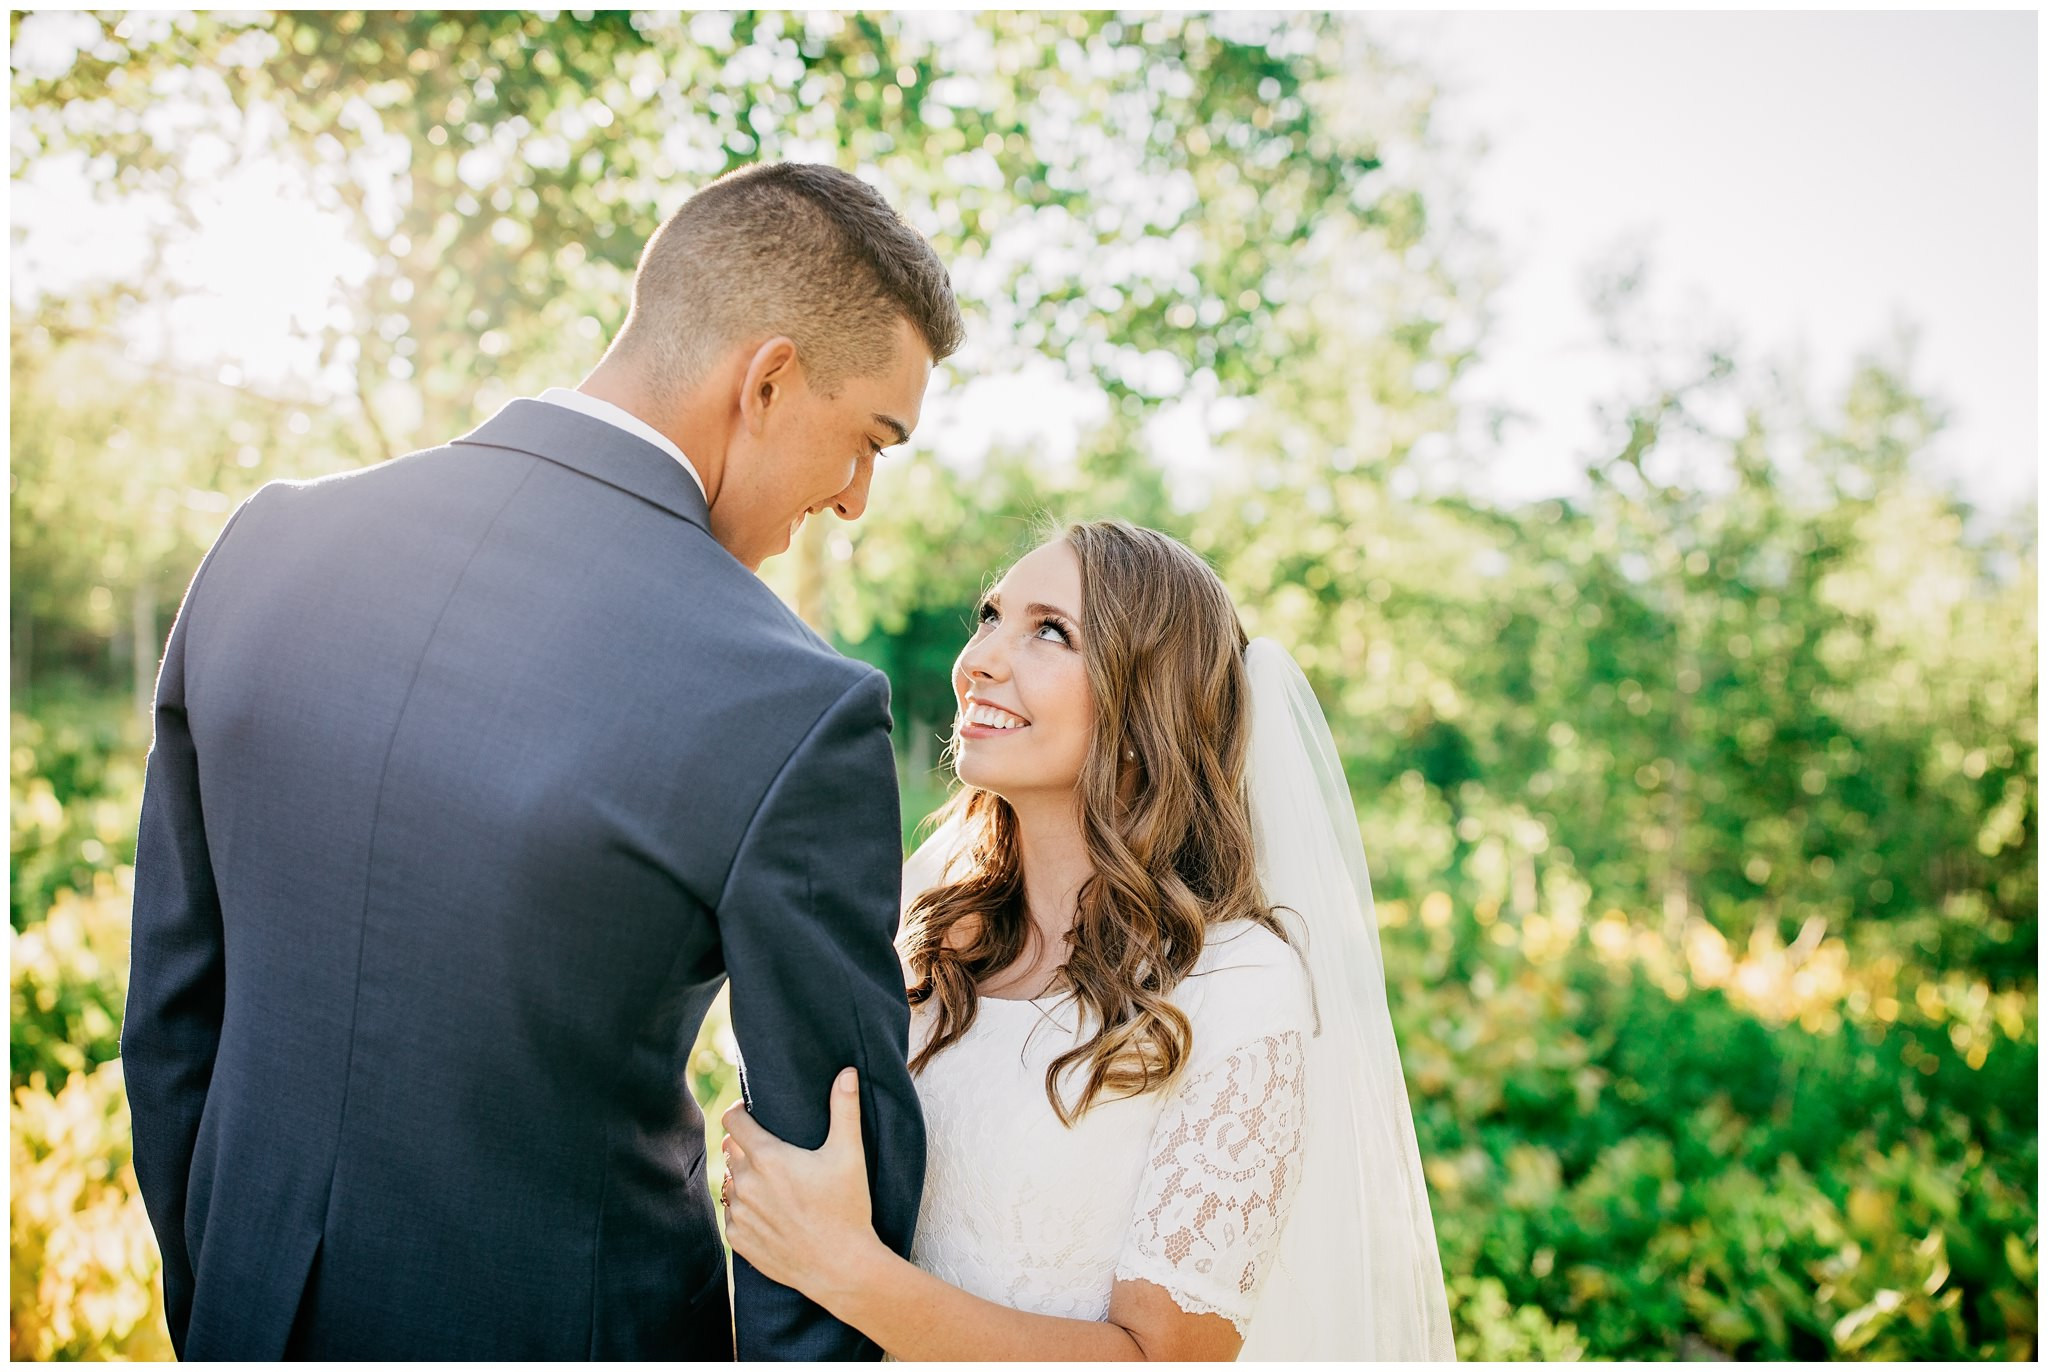 Bride and groom in mountains near aspen tree for their bridals